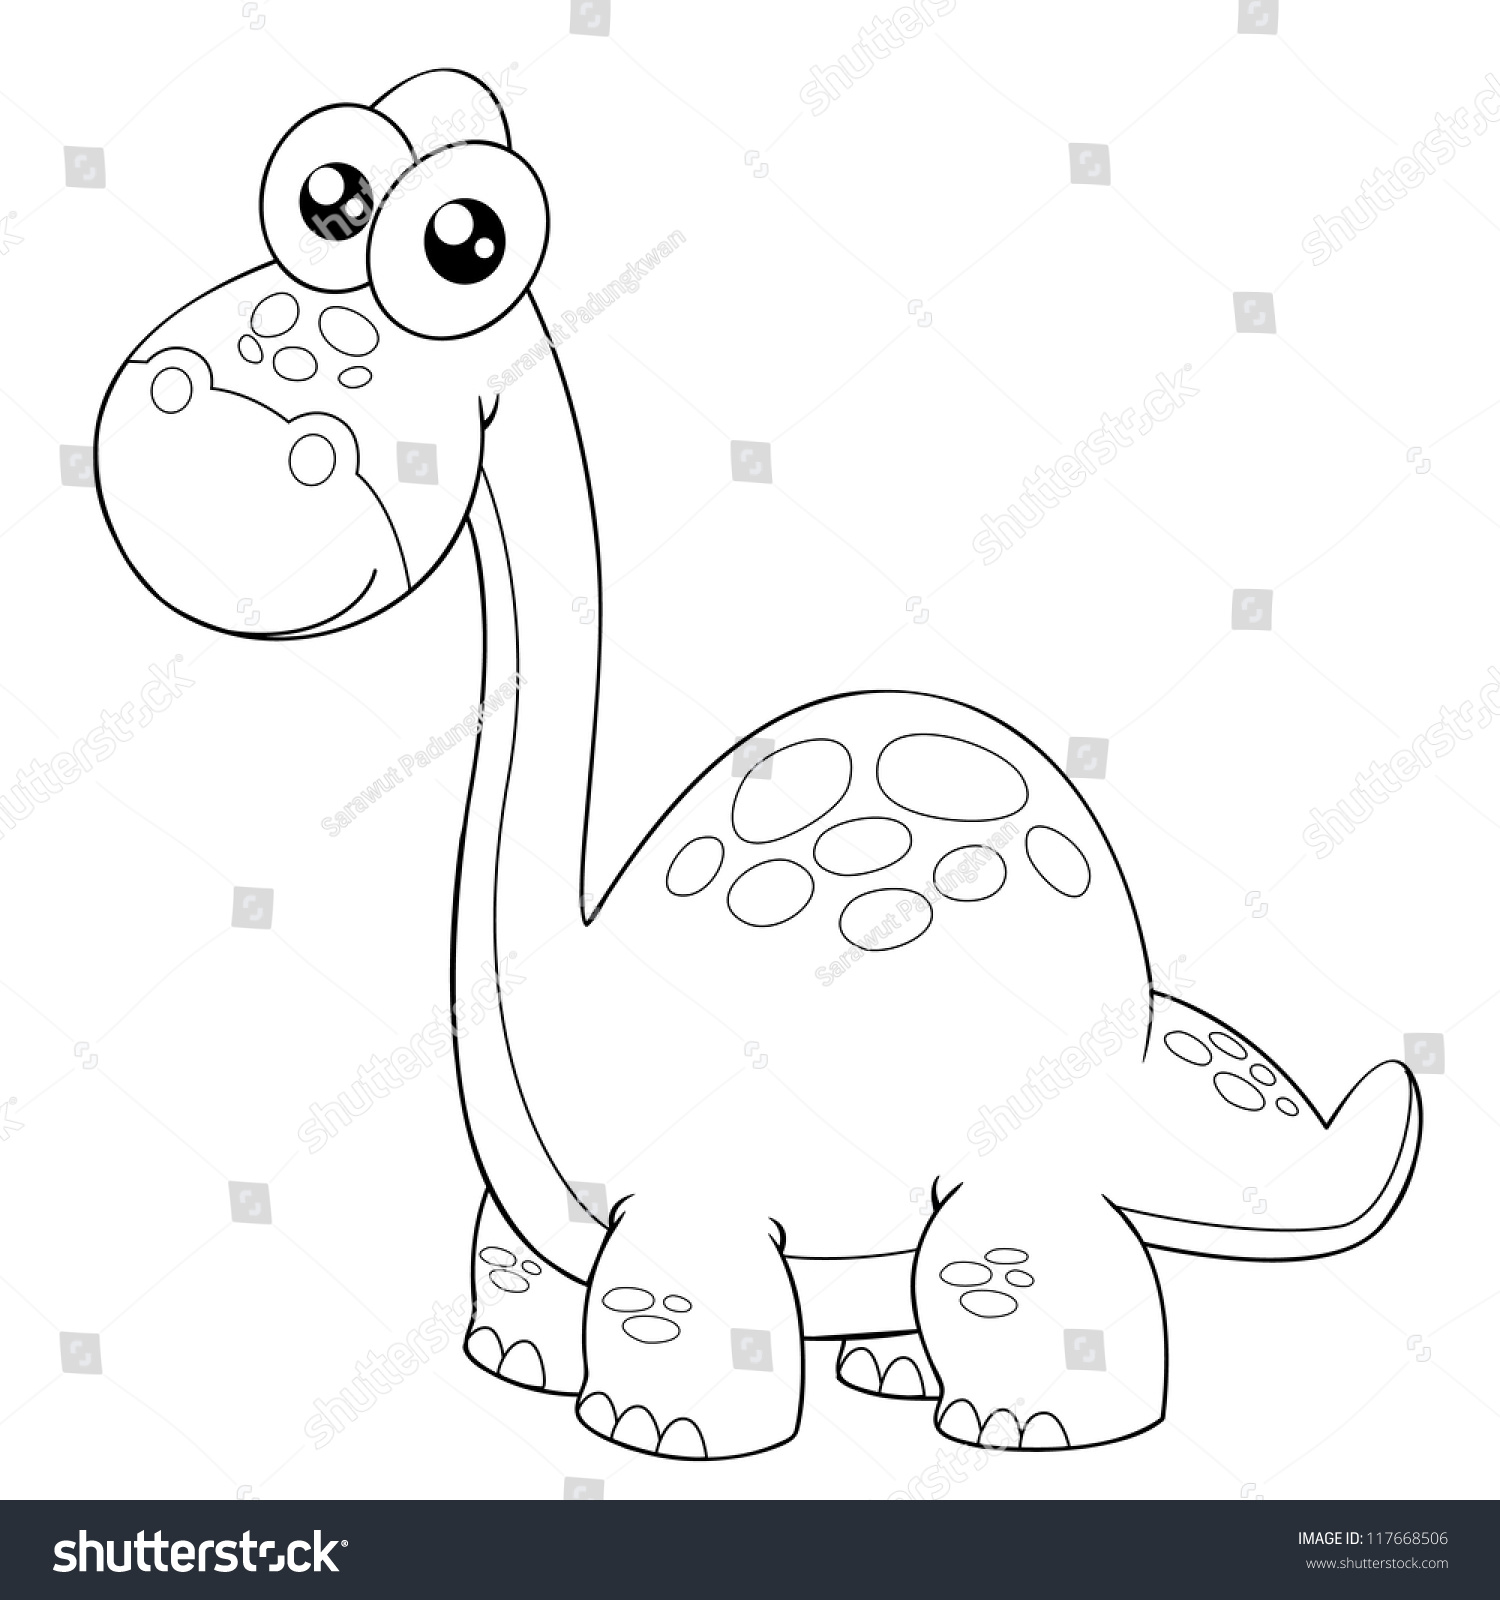 Gallery For gt Simple Brontosaurus Outline